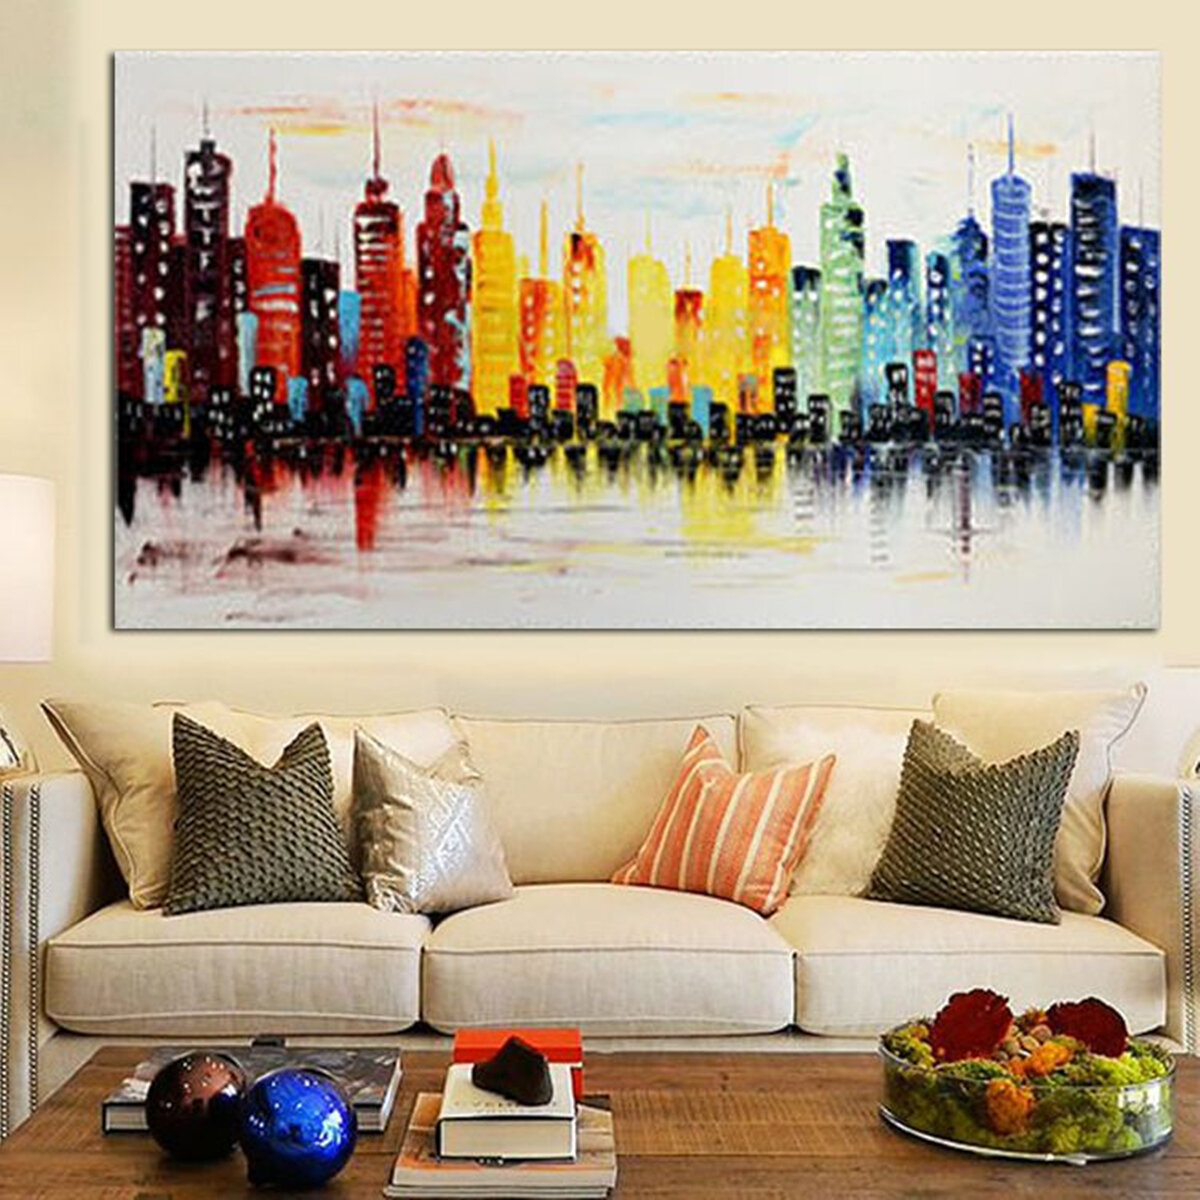 120x60cm modern city canvas abstract painting print living room art wall decor no frame paper art cod